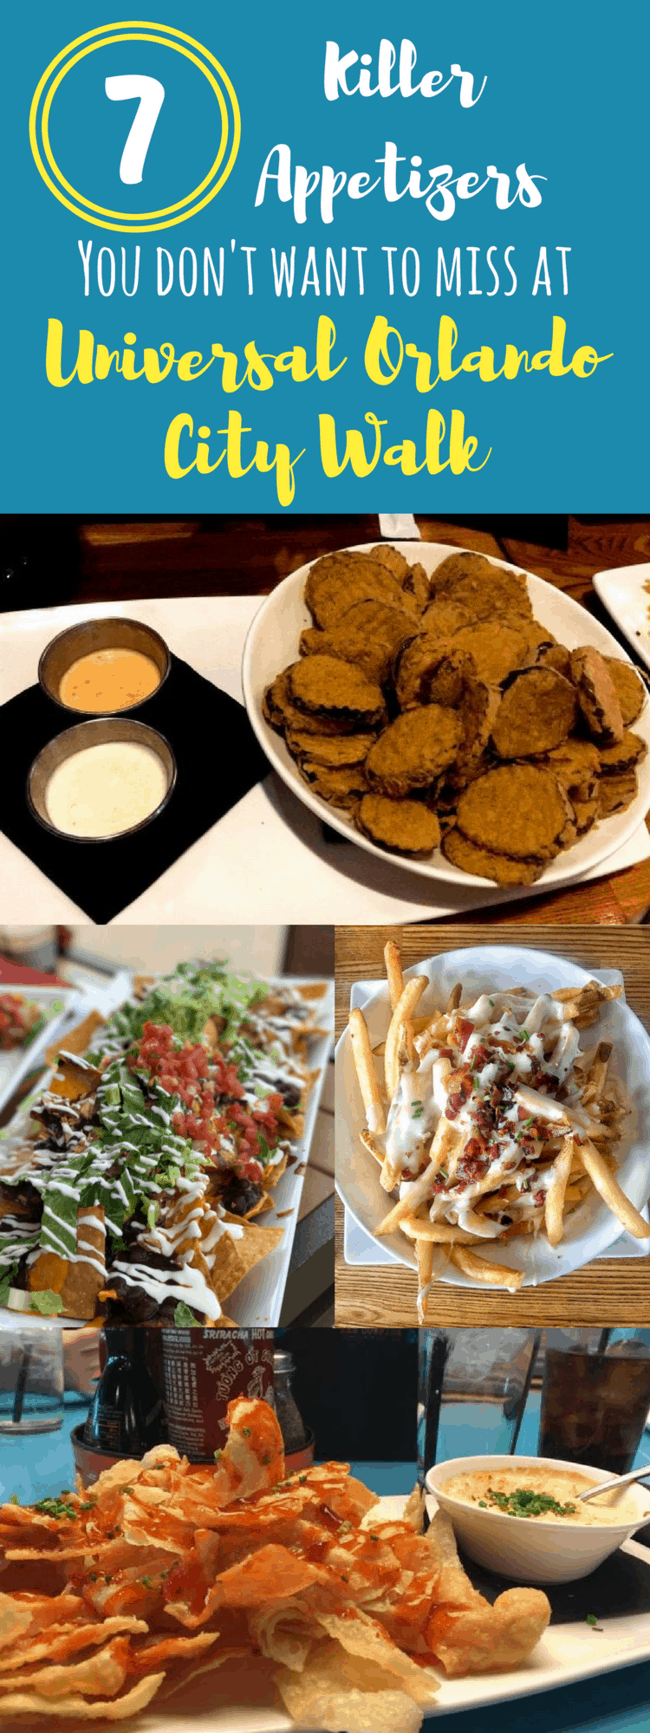 What should you eat at Universal Orlando CityWalk? glad you asked about dining options! Killer appetizers you don't want to miss at City Walk and Universal Orlando in Florida. All the tips you need to start your dining at the parks!